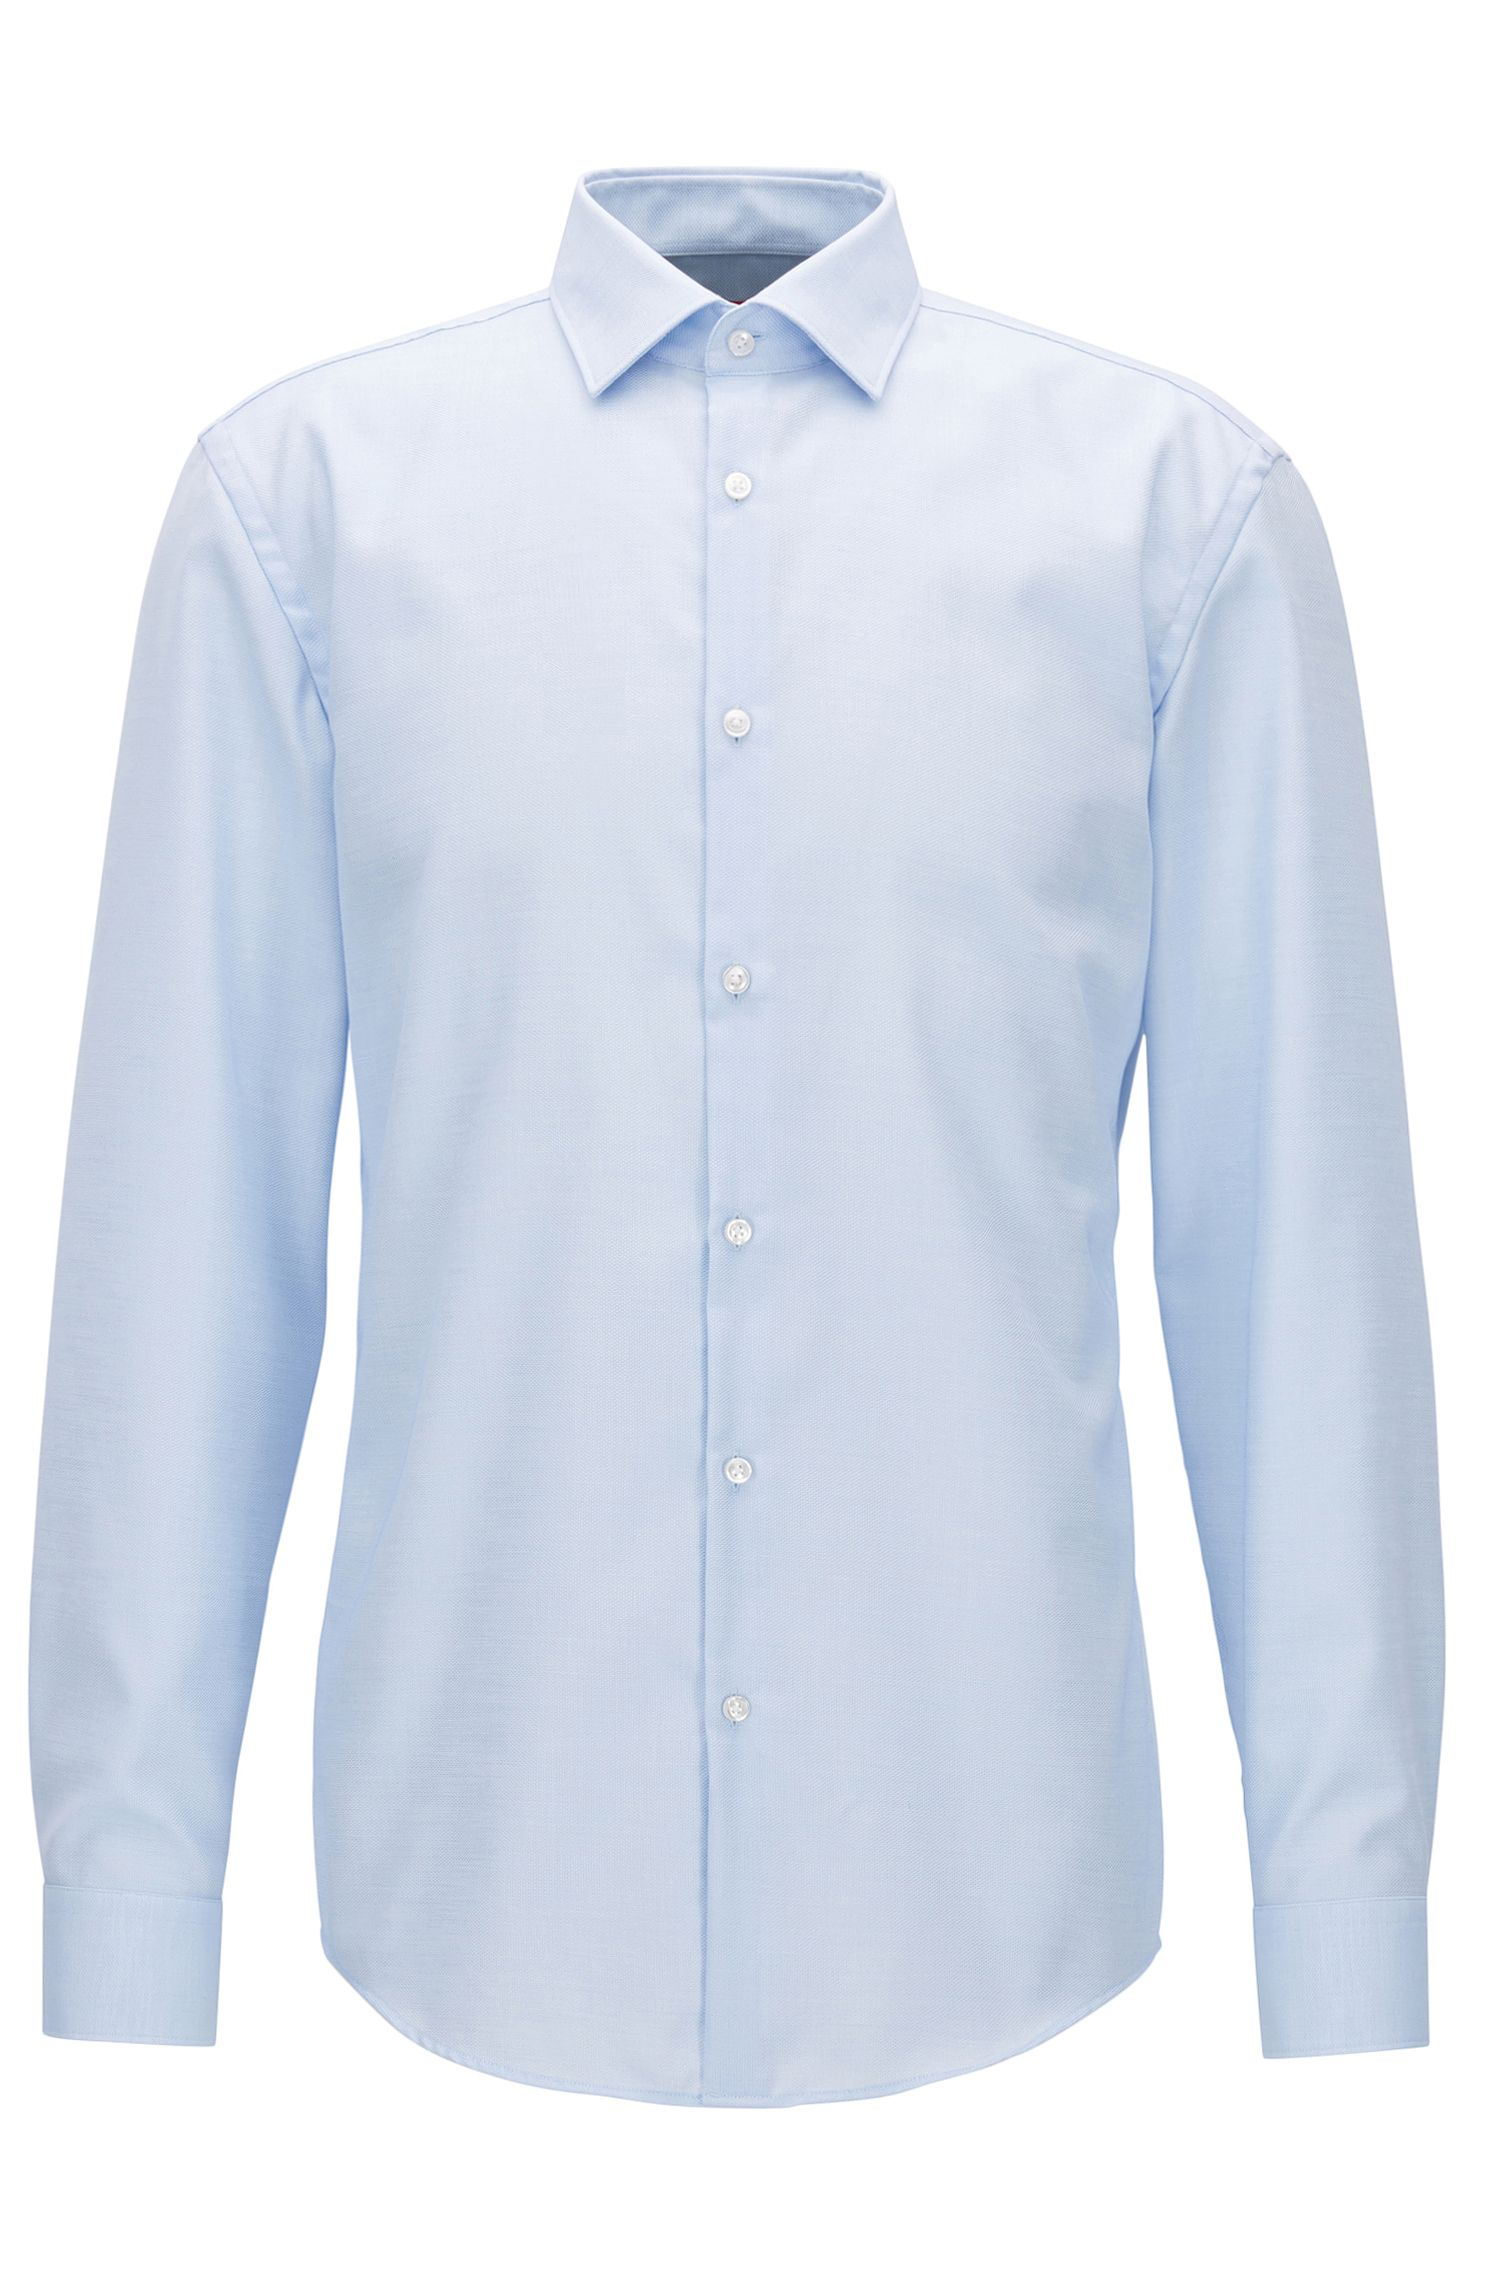 Cotton micro-pattern shirt in a slim fit